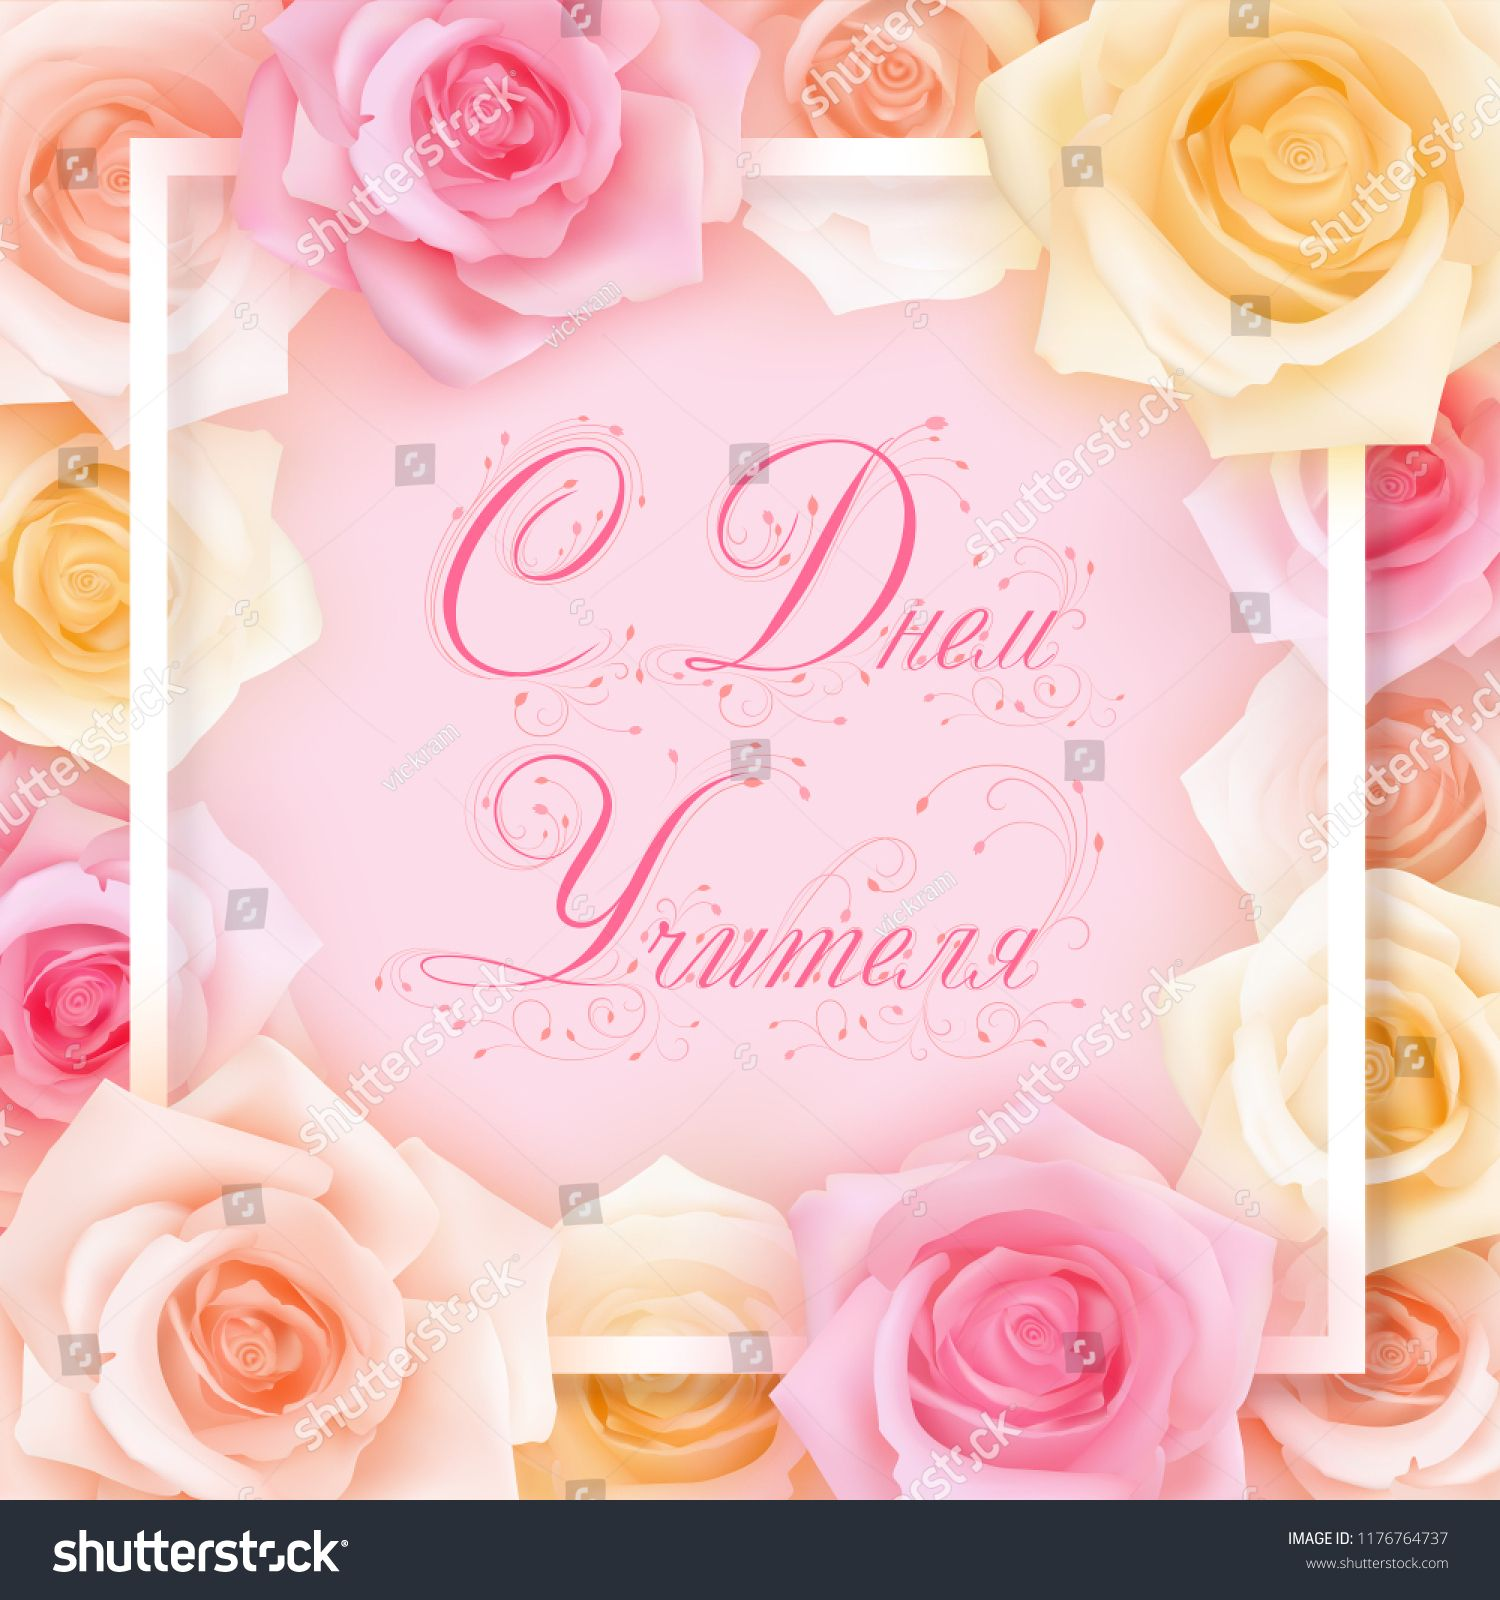 Happy Teachers Day Greeting Card With Pink Roses White Frame With